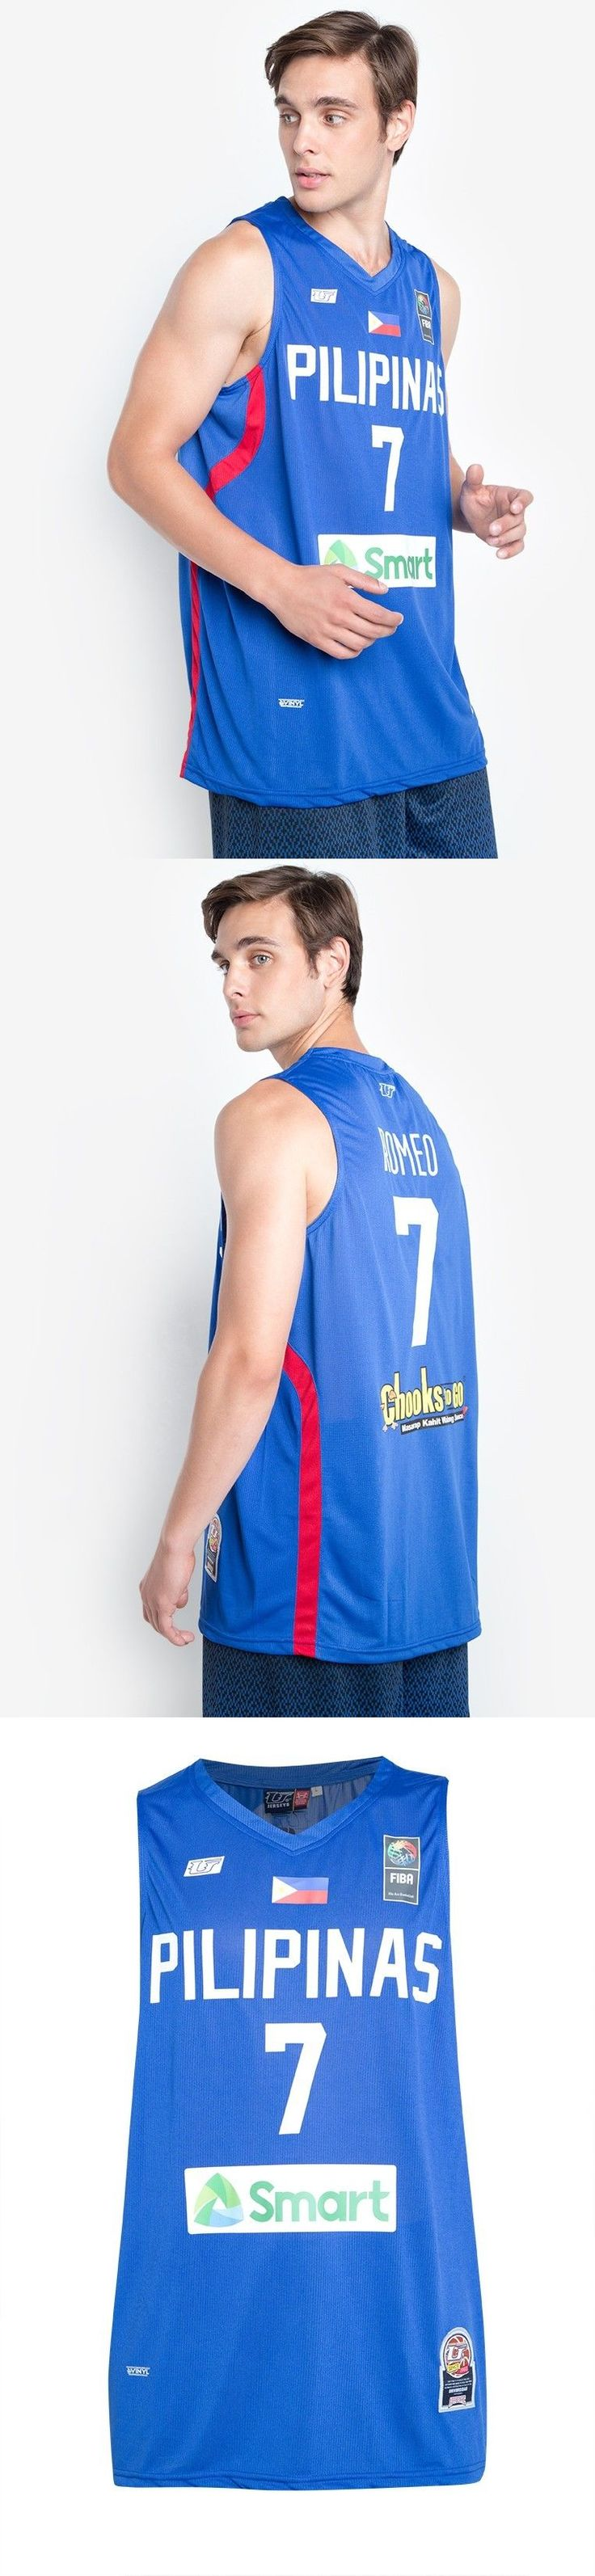 Basketball-Other 205: Terrence Romeo Gilas Pilipinas Seaba Jersey #7 Philippines Basketball Pacquiao -> BUY IT NOW ONLY: $38.88 on eBay!